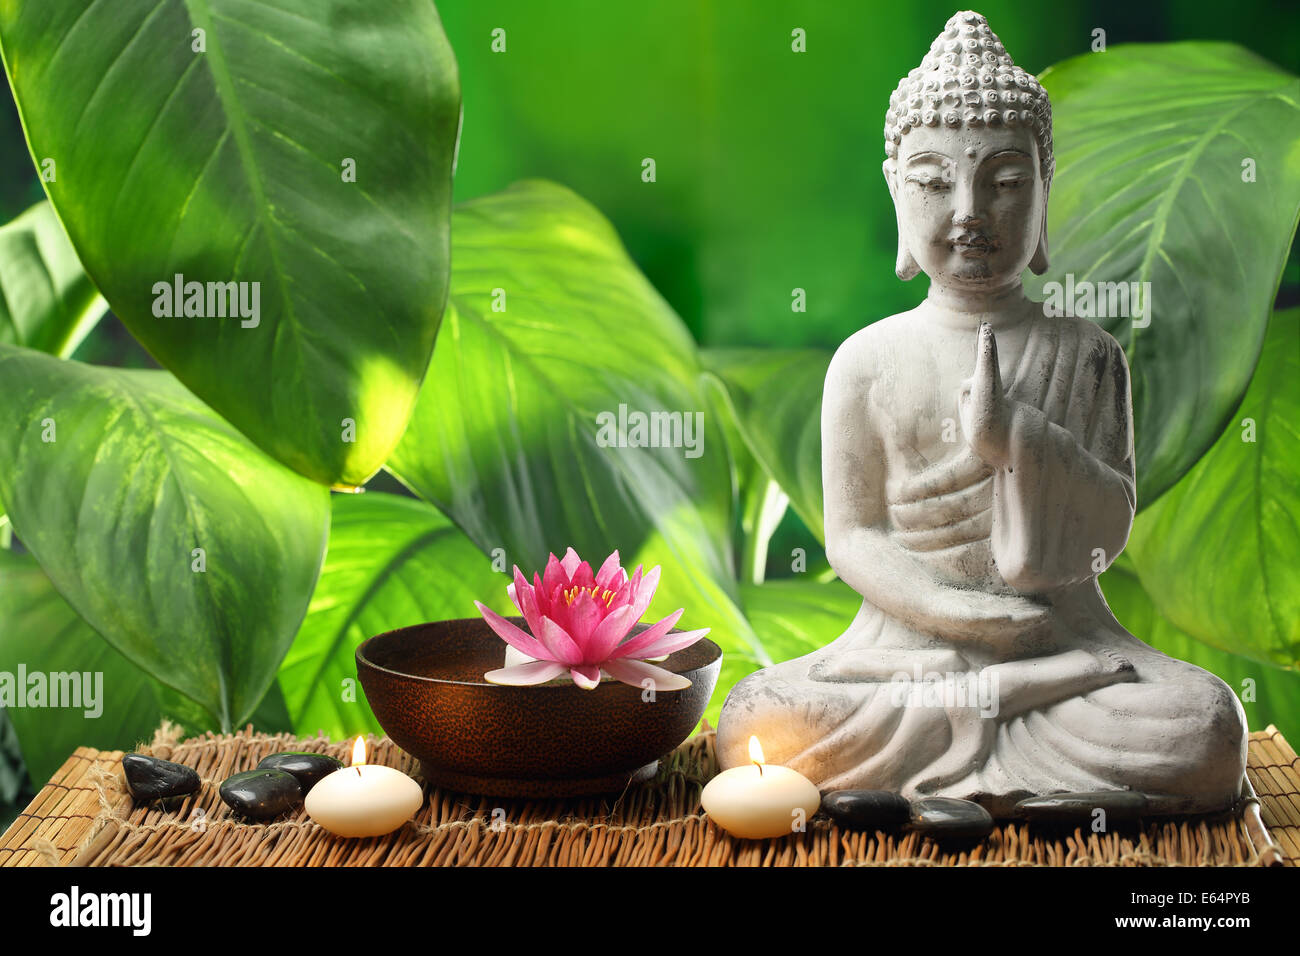 Buddha In Meditation With Lotus Flower And Burning Candles Stock